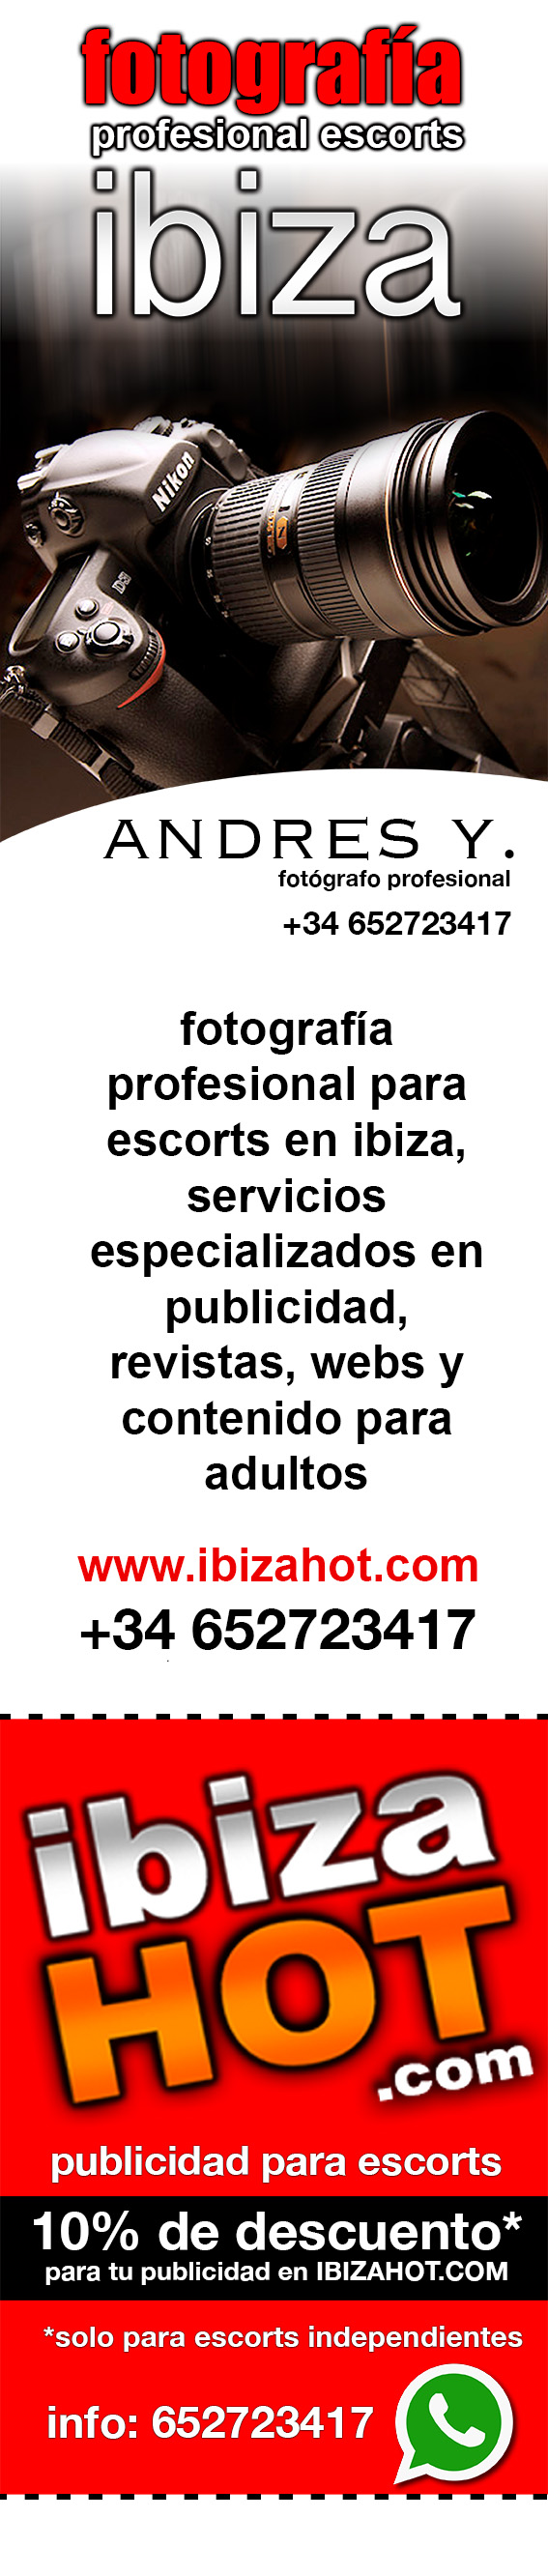 IBIZAHOT.COM - escorts ibiza, escort in ibiza, ibiza escorts, girls escort ibiza, putas en ibiza, chicas escort, putas en ibiza, escorts in ibiza, sex contacts ibiza, hookers in ibiza, sex ladies ibiza, callgirls ibiza -  - España Escort tu guia de anuncios